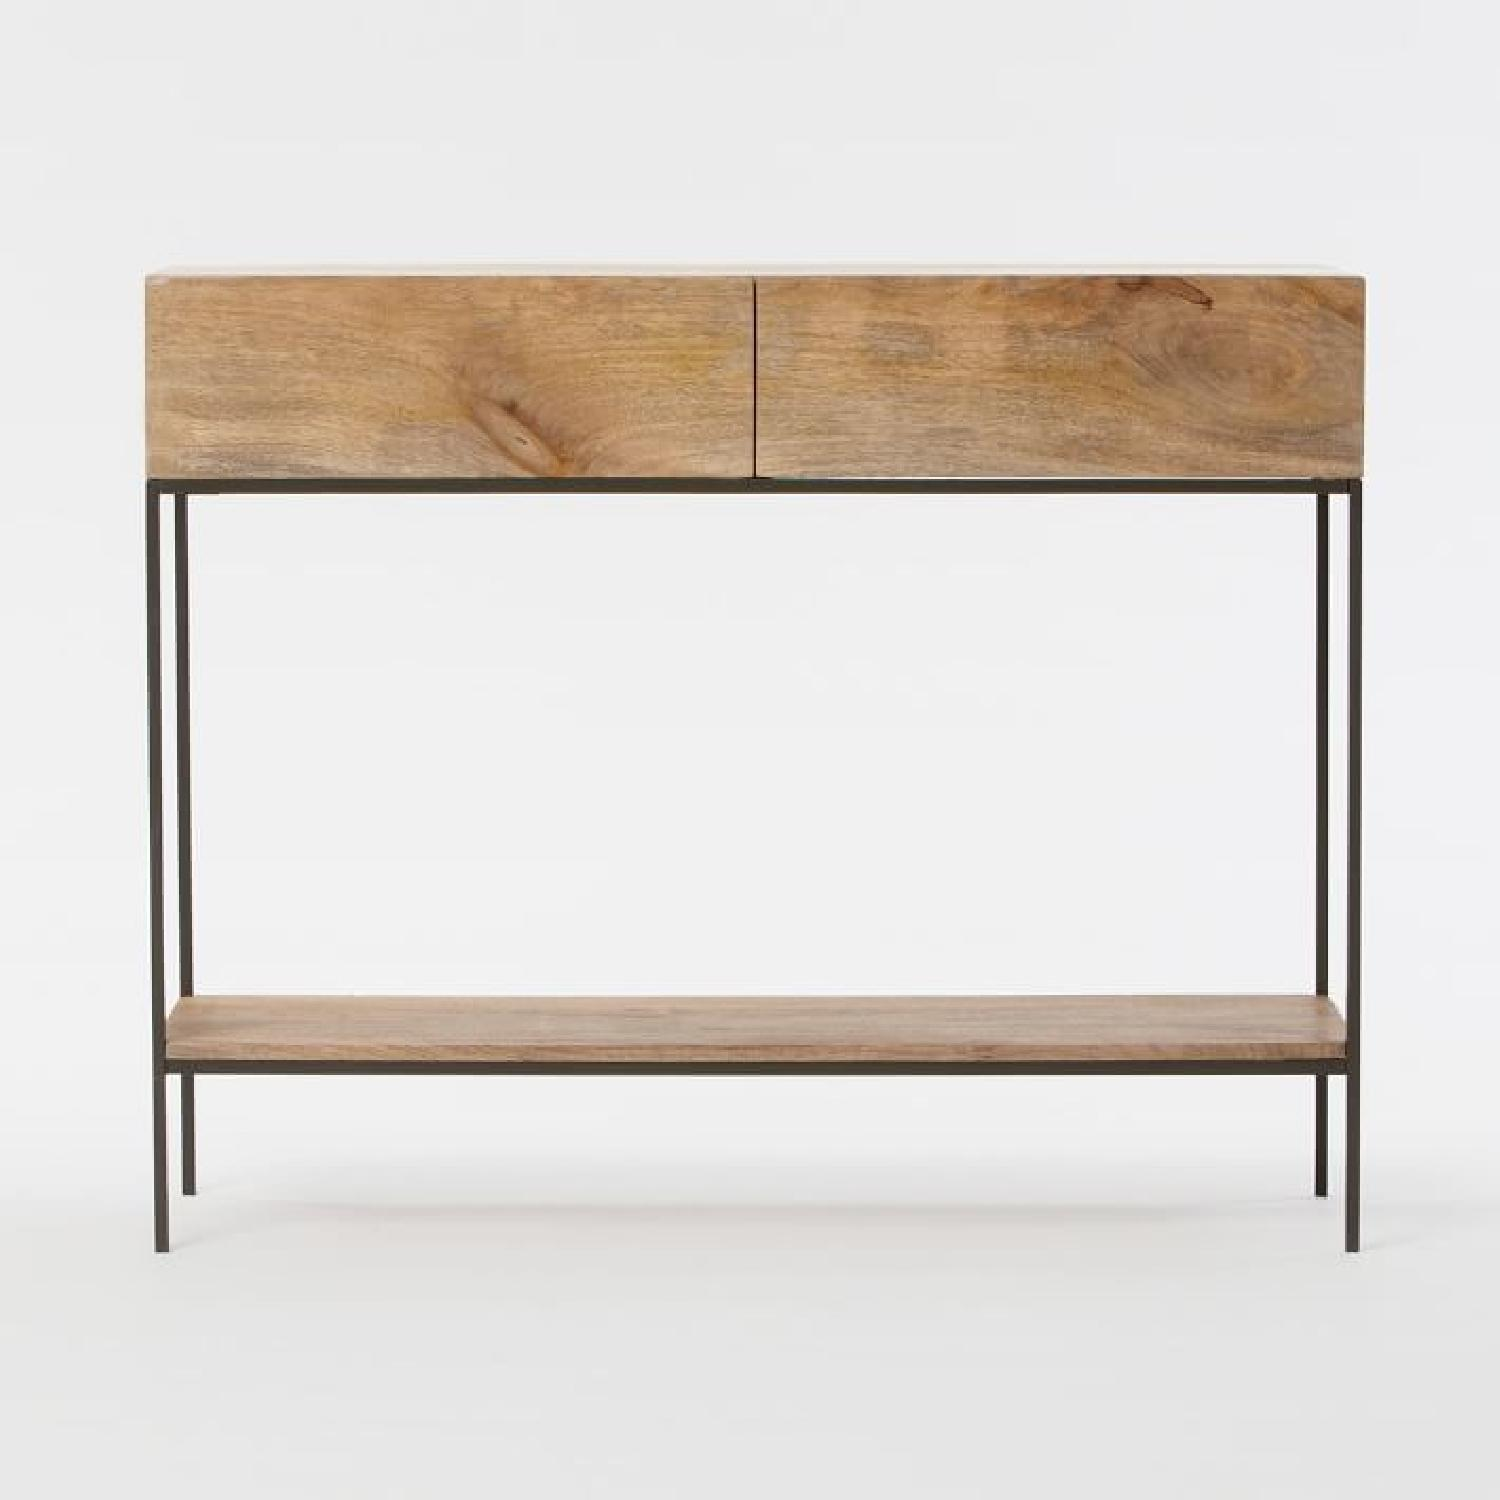 West Elm Modern Console Table in Natural Finish w/ Drawers - image-4